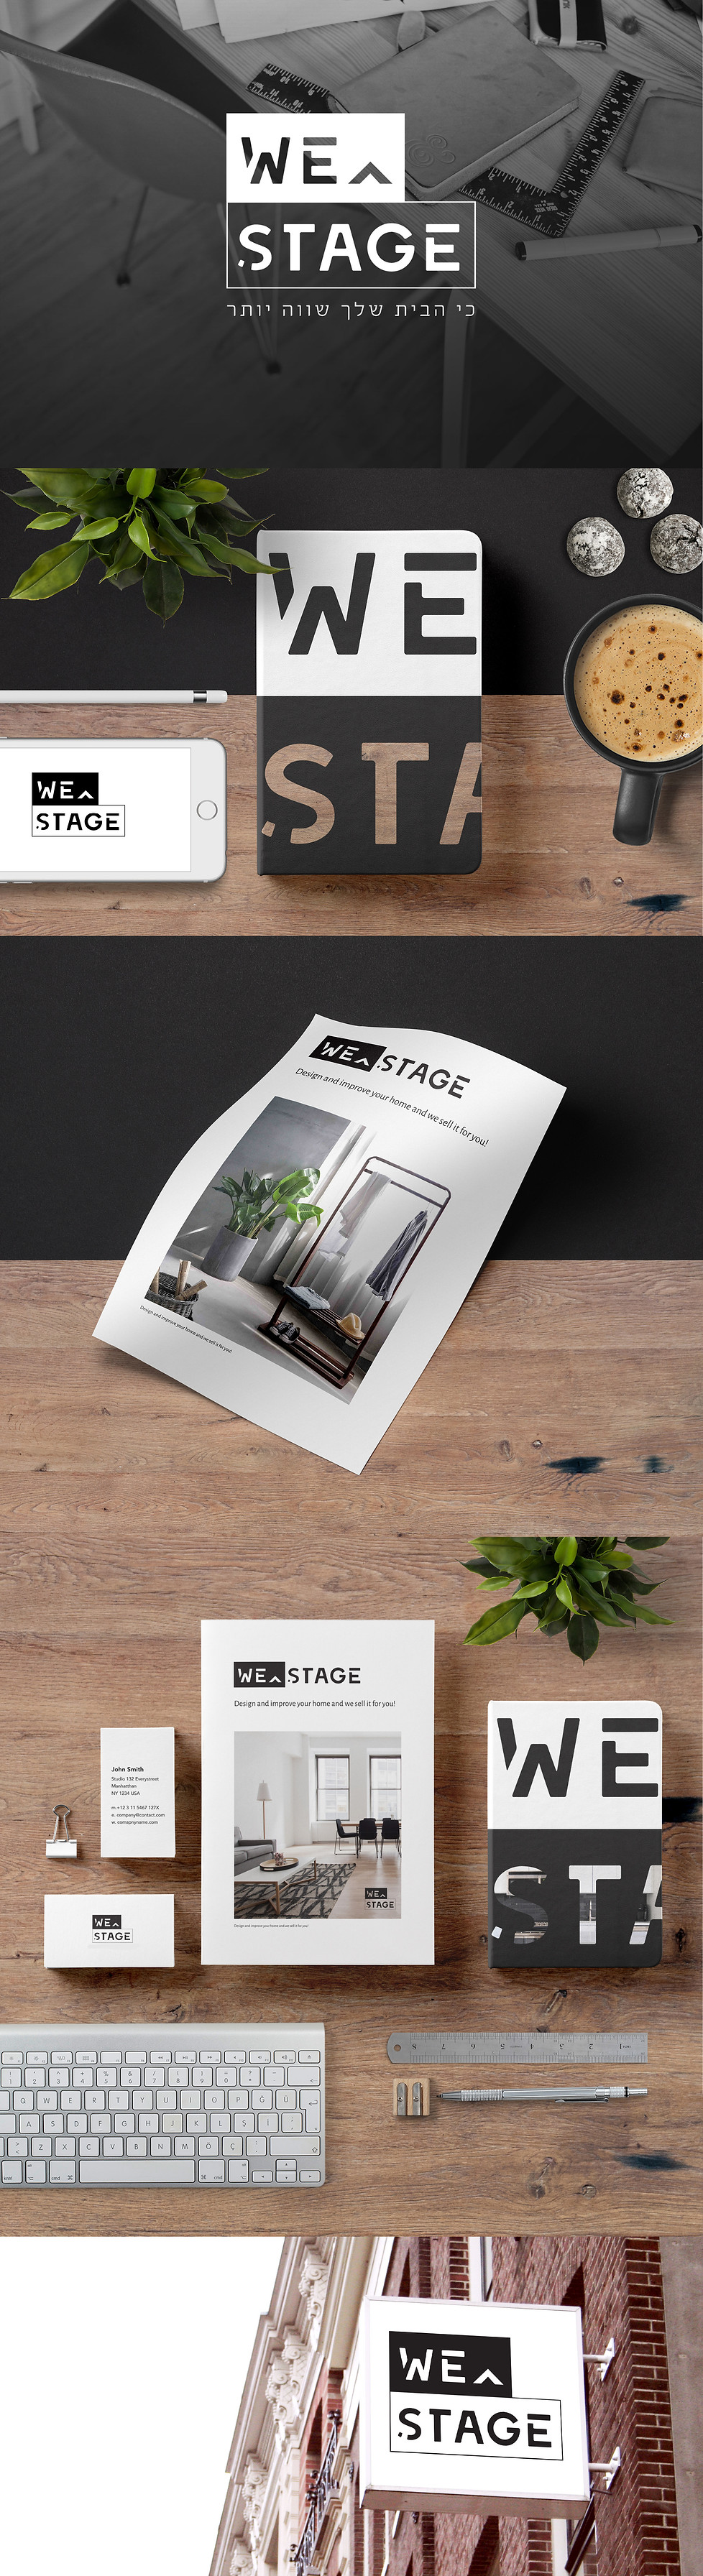 We Stage Home Staging